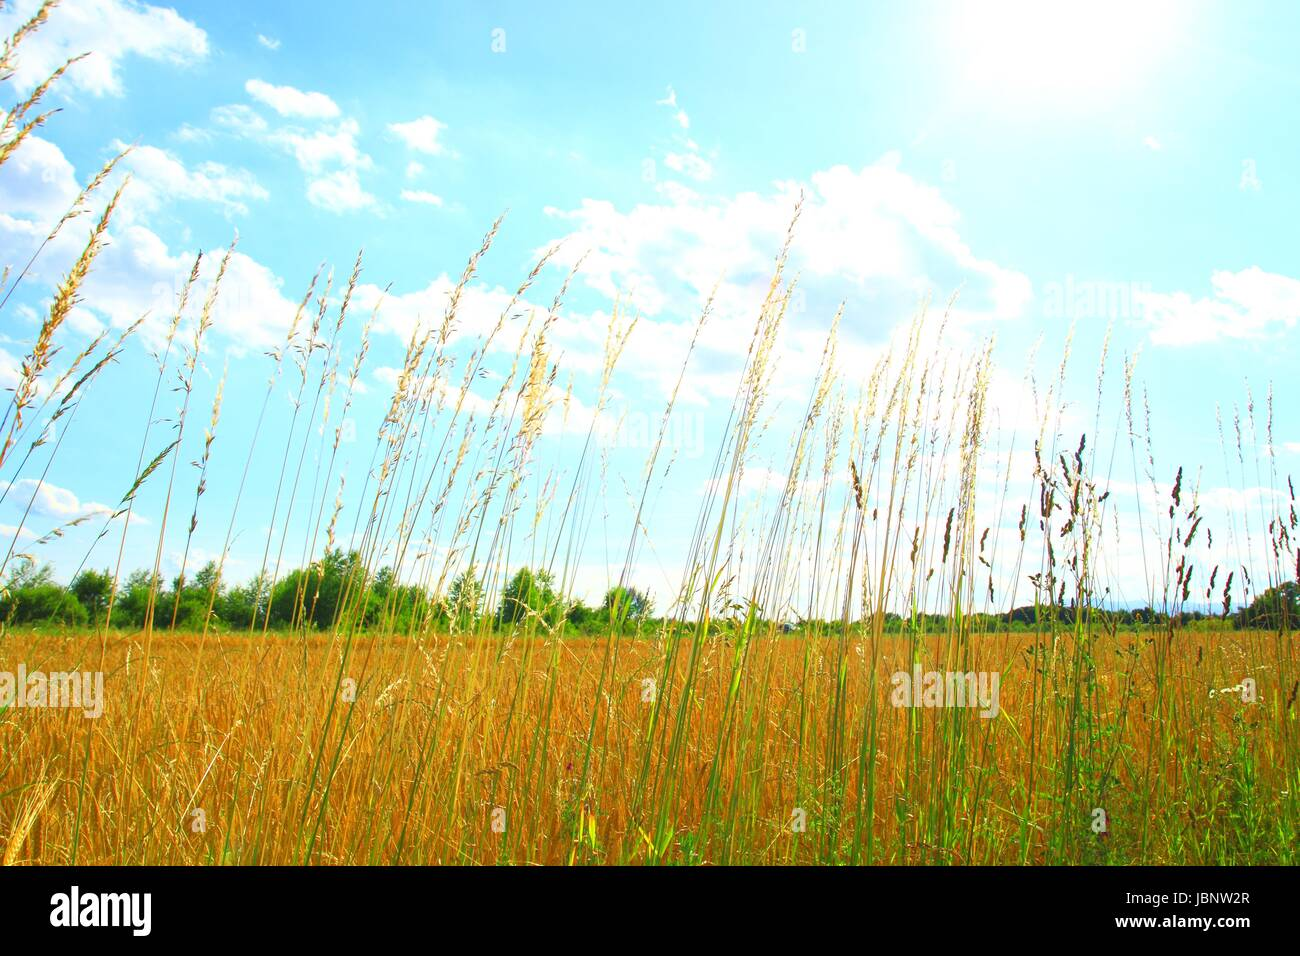 High grass in wheat field, sunny day, bright background - Stock Image